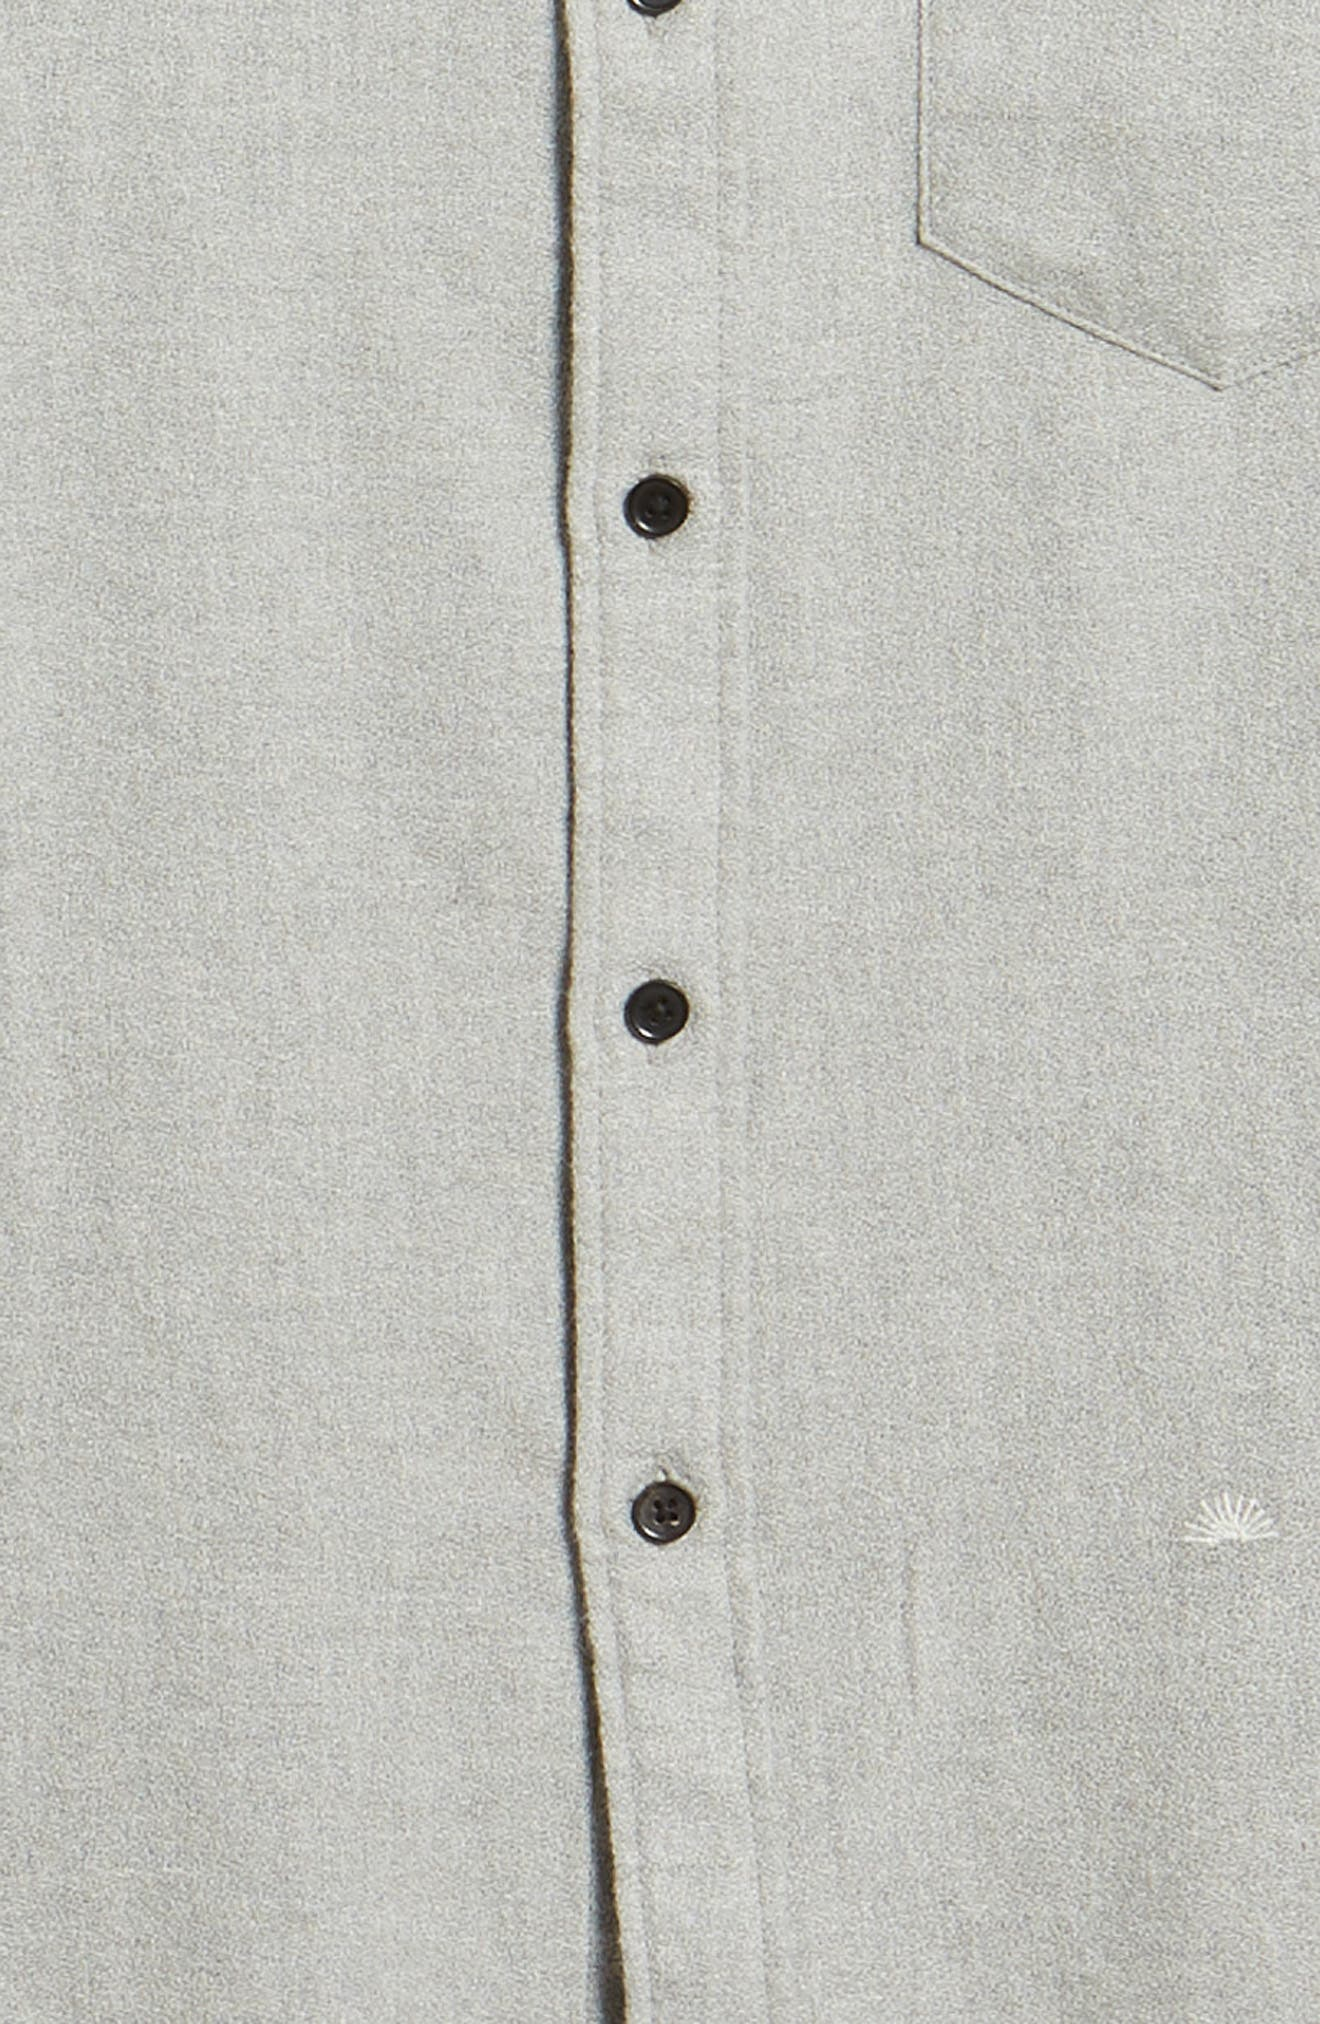 Levi's<sup>®</sup> Made & Crafted Regular Fit Mélange Shirt,                             Alternate thumbnail 6, color,                             020